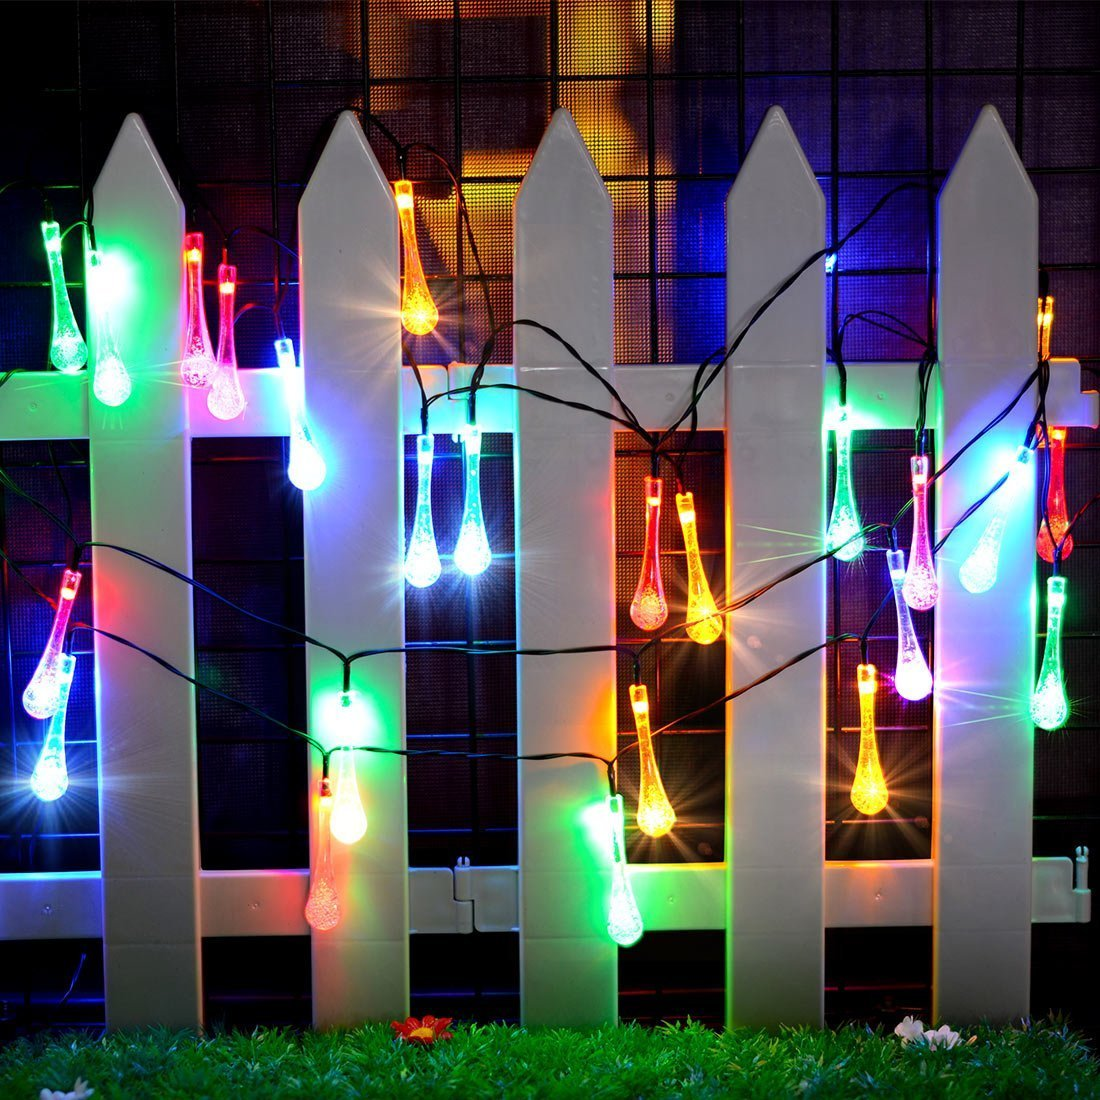 Solar String Lights,30 LED Christmas lights water drop, waterproof solar powered fairy lights garden decrotion,8 Modes twinkling outdoor or indoor lights (Colorful)